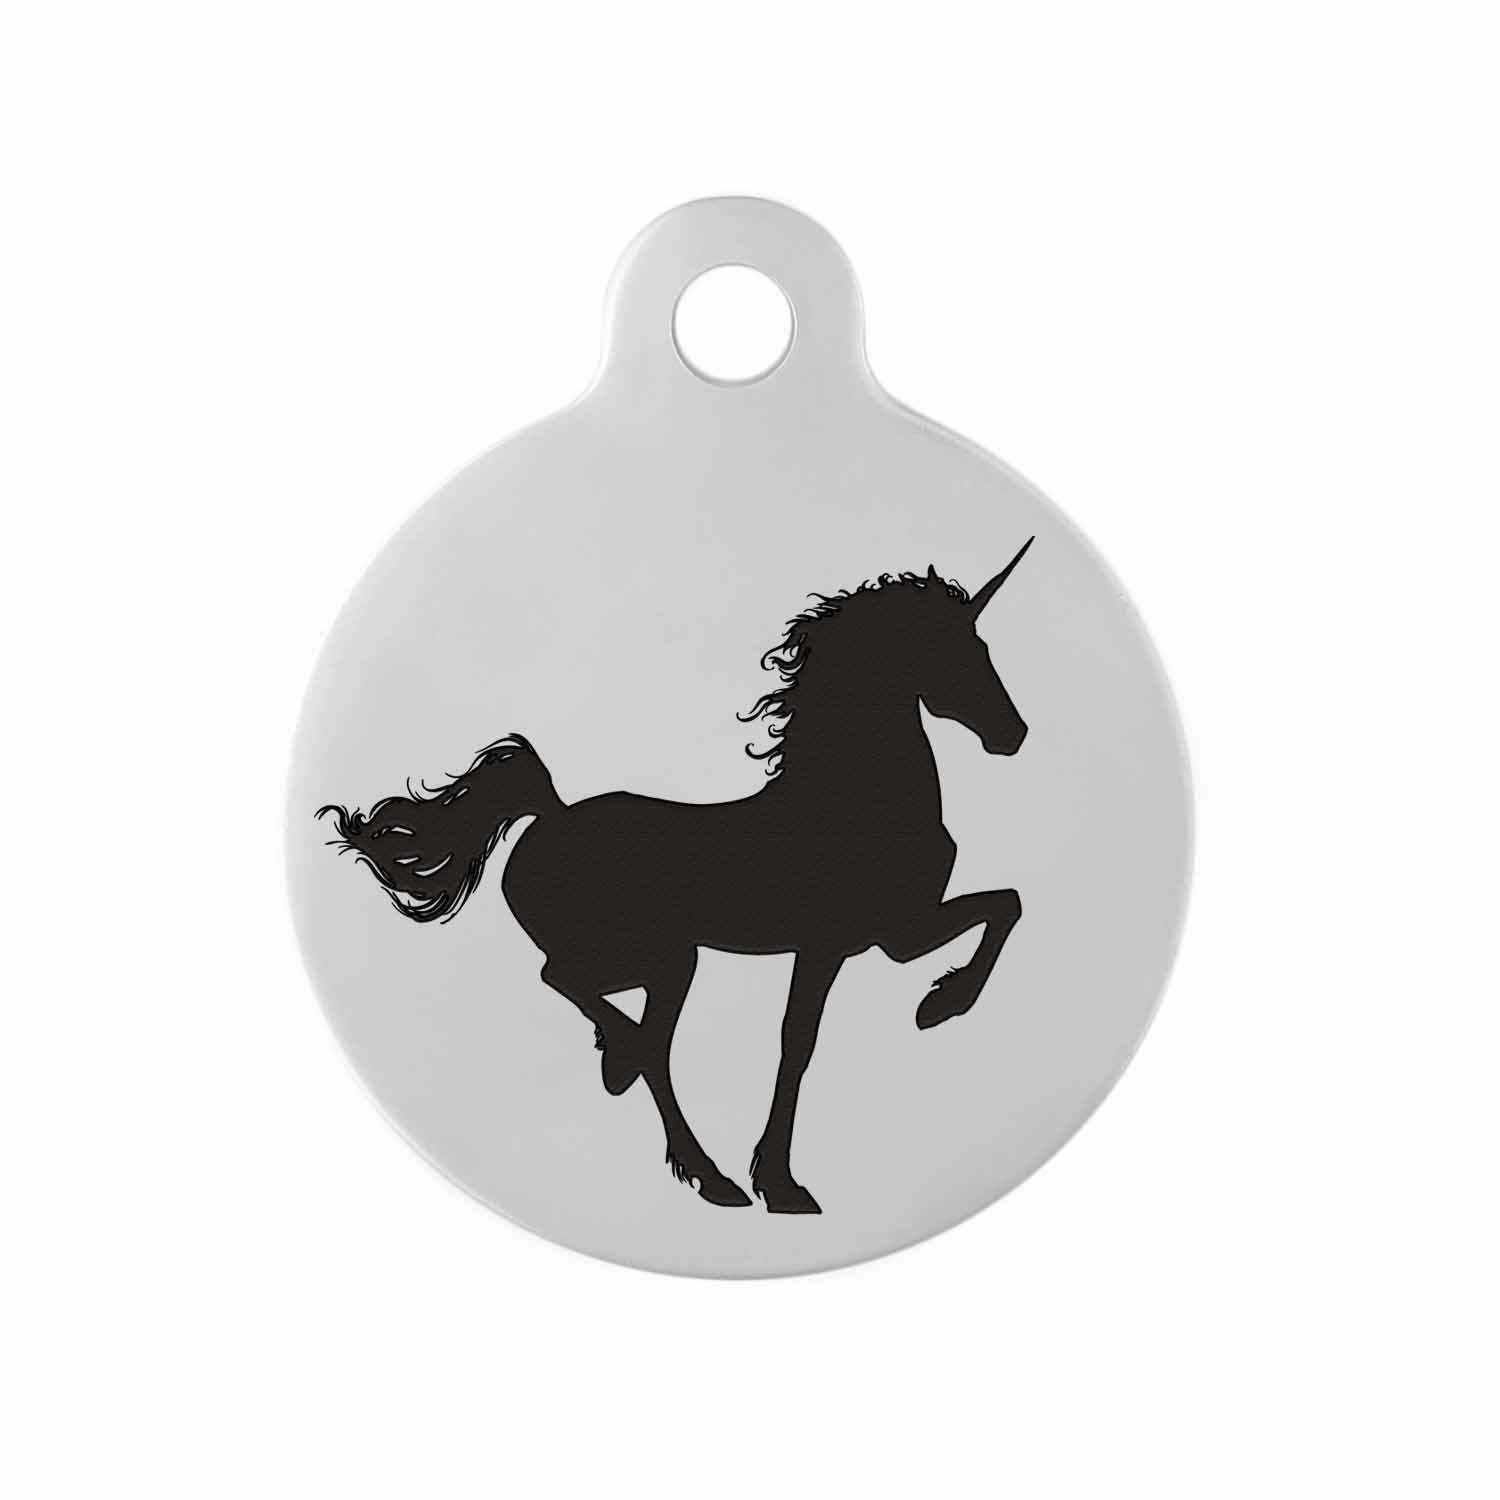 Custom DIY Dog Tag  - Example Design Unicorn